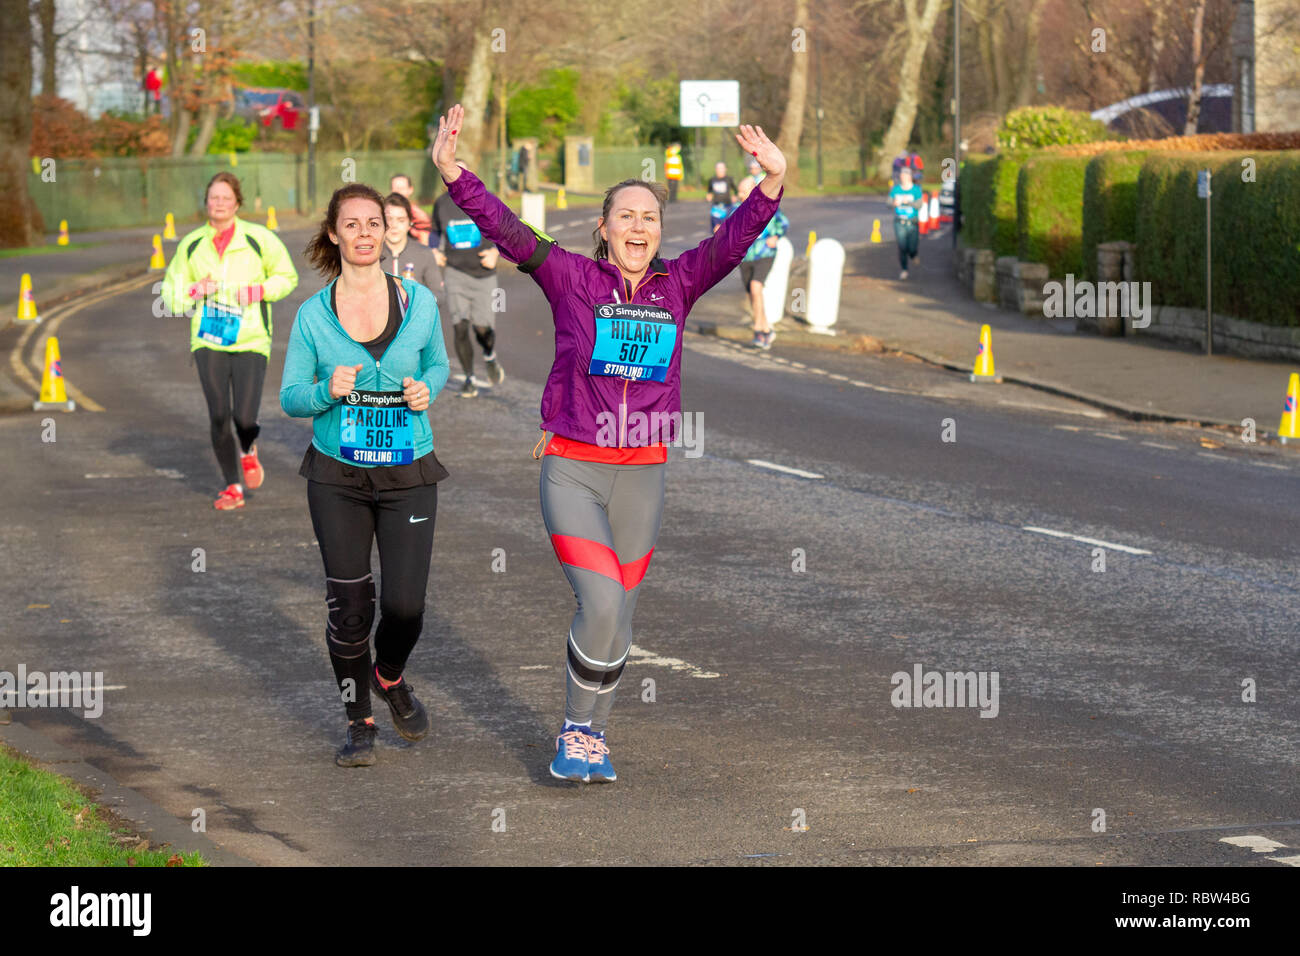 Stirling, Scotland, UK. 12th January, 2019. Runners have been taking part in this year's Great Stirling Castle Run, a challenging 7-kilometre course across the historic and picturesque Scottish city of Stirling. They were watched and cheered on by spectators as they crossed the finish line in King's Park. The event was sponsored by Simplyhealth. Iain McGuinness / Alamy Live News - Stock Image